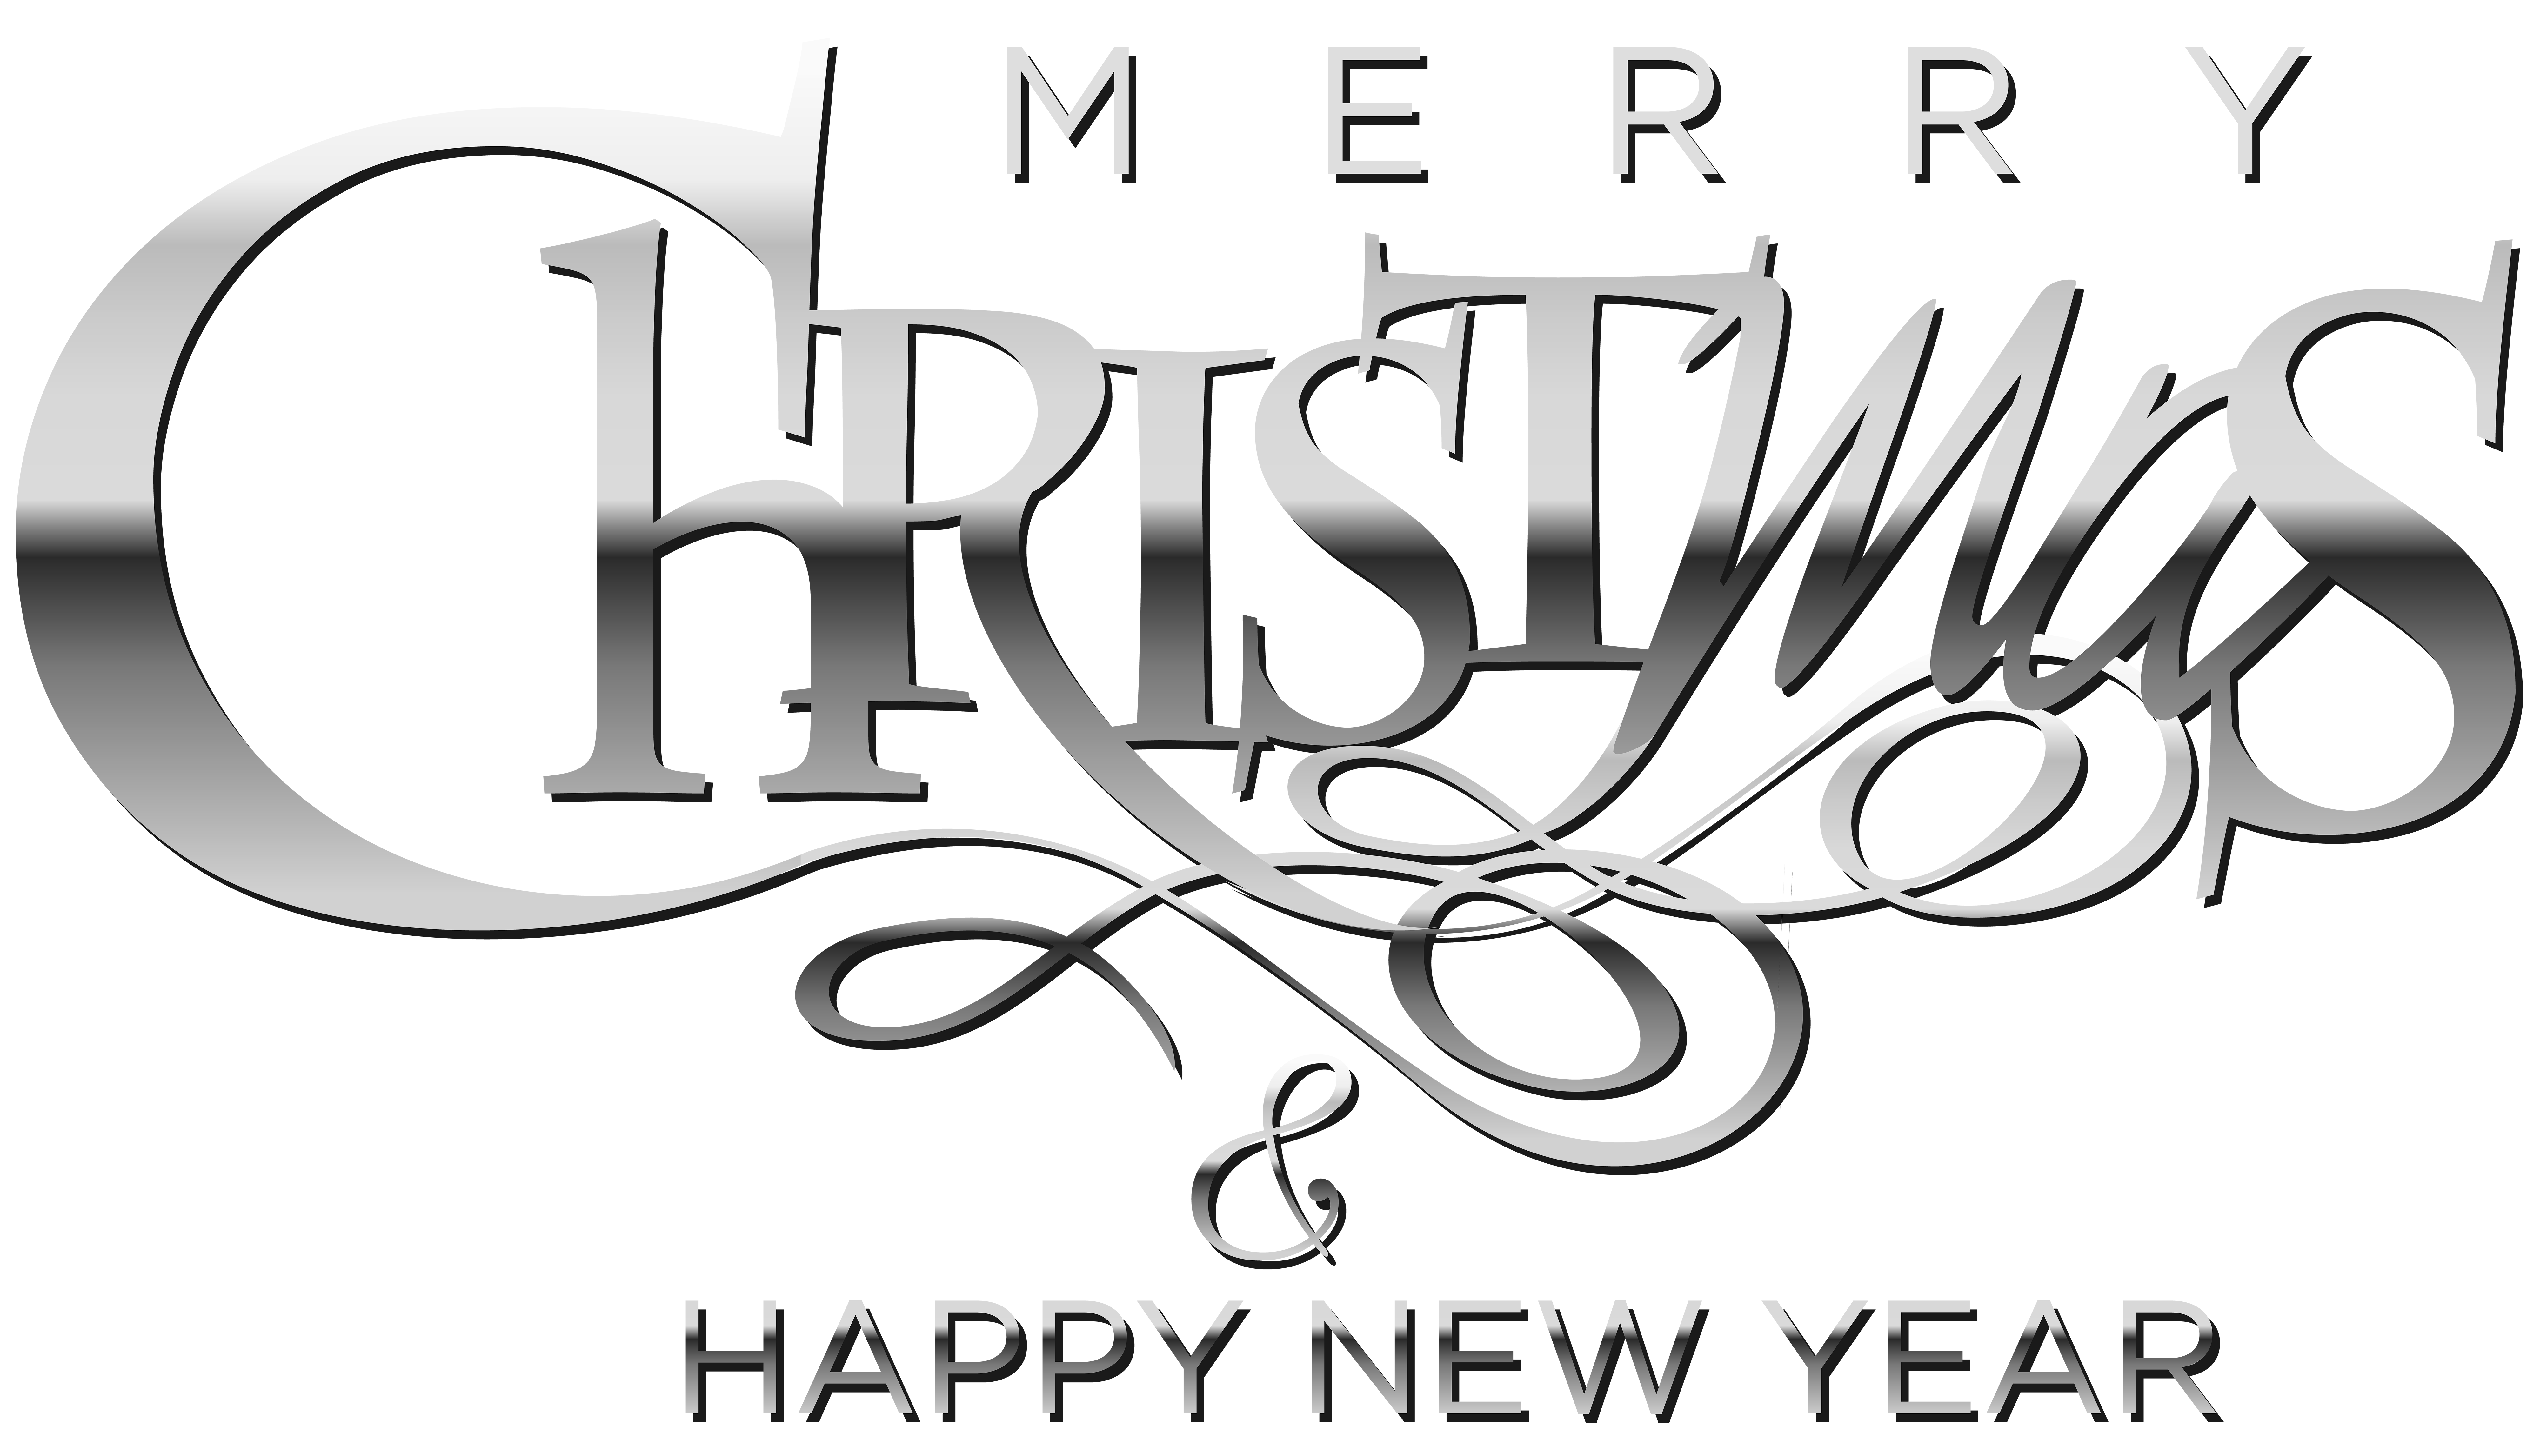 Merry Christmas And Happy New Year Clip Art Gallery Yopriceville High Quality Images And Transp Clip Art Merry Christmas And Happy New Year Happy New Year